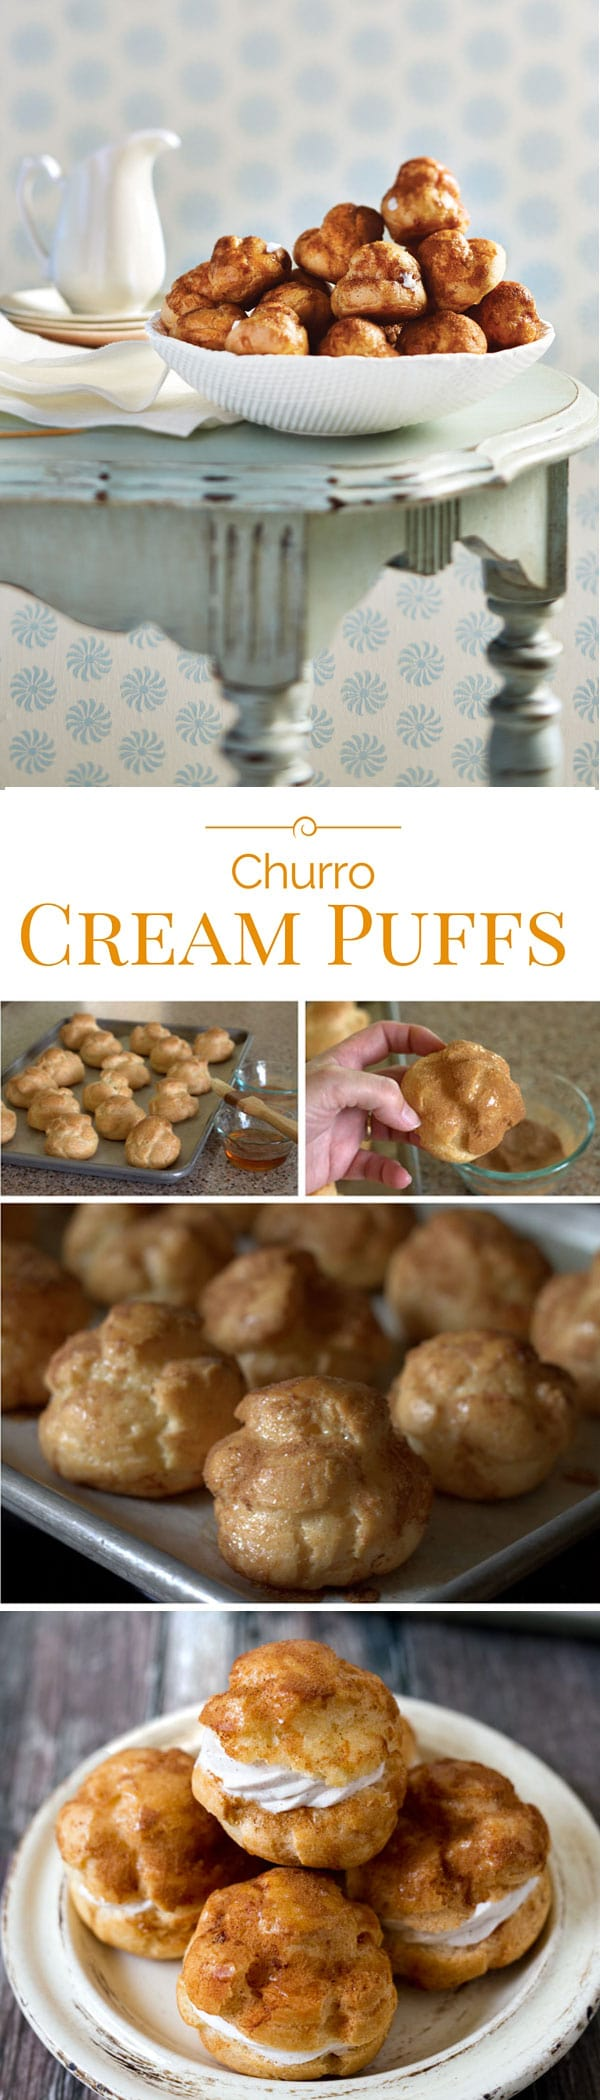 A crisp cinnamon-sugar shell filled with a light and airy cinnamon whipped cream. If you love churros, you'll love these baked not fried Churro cream puffs.